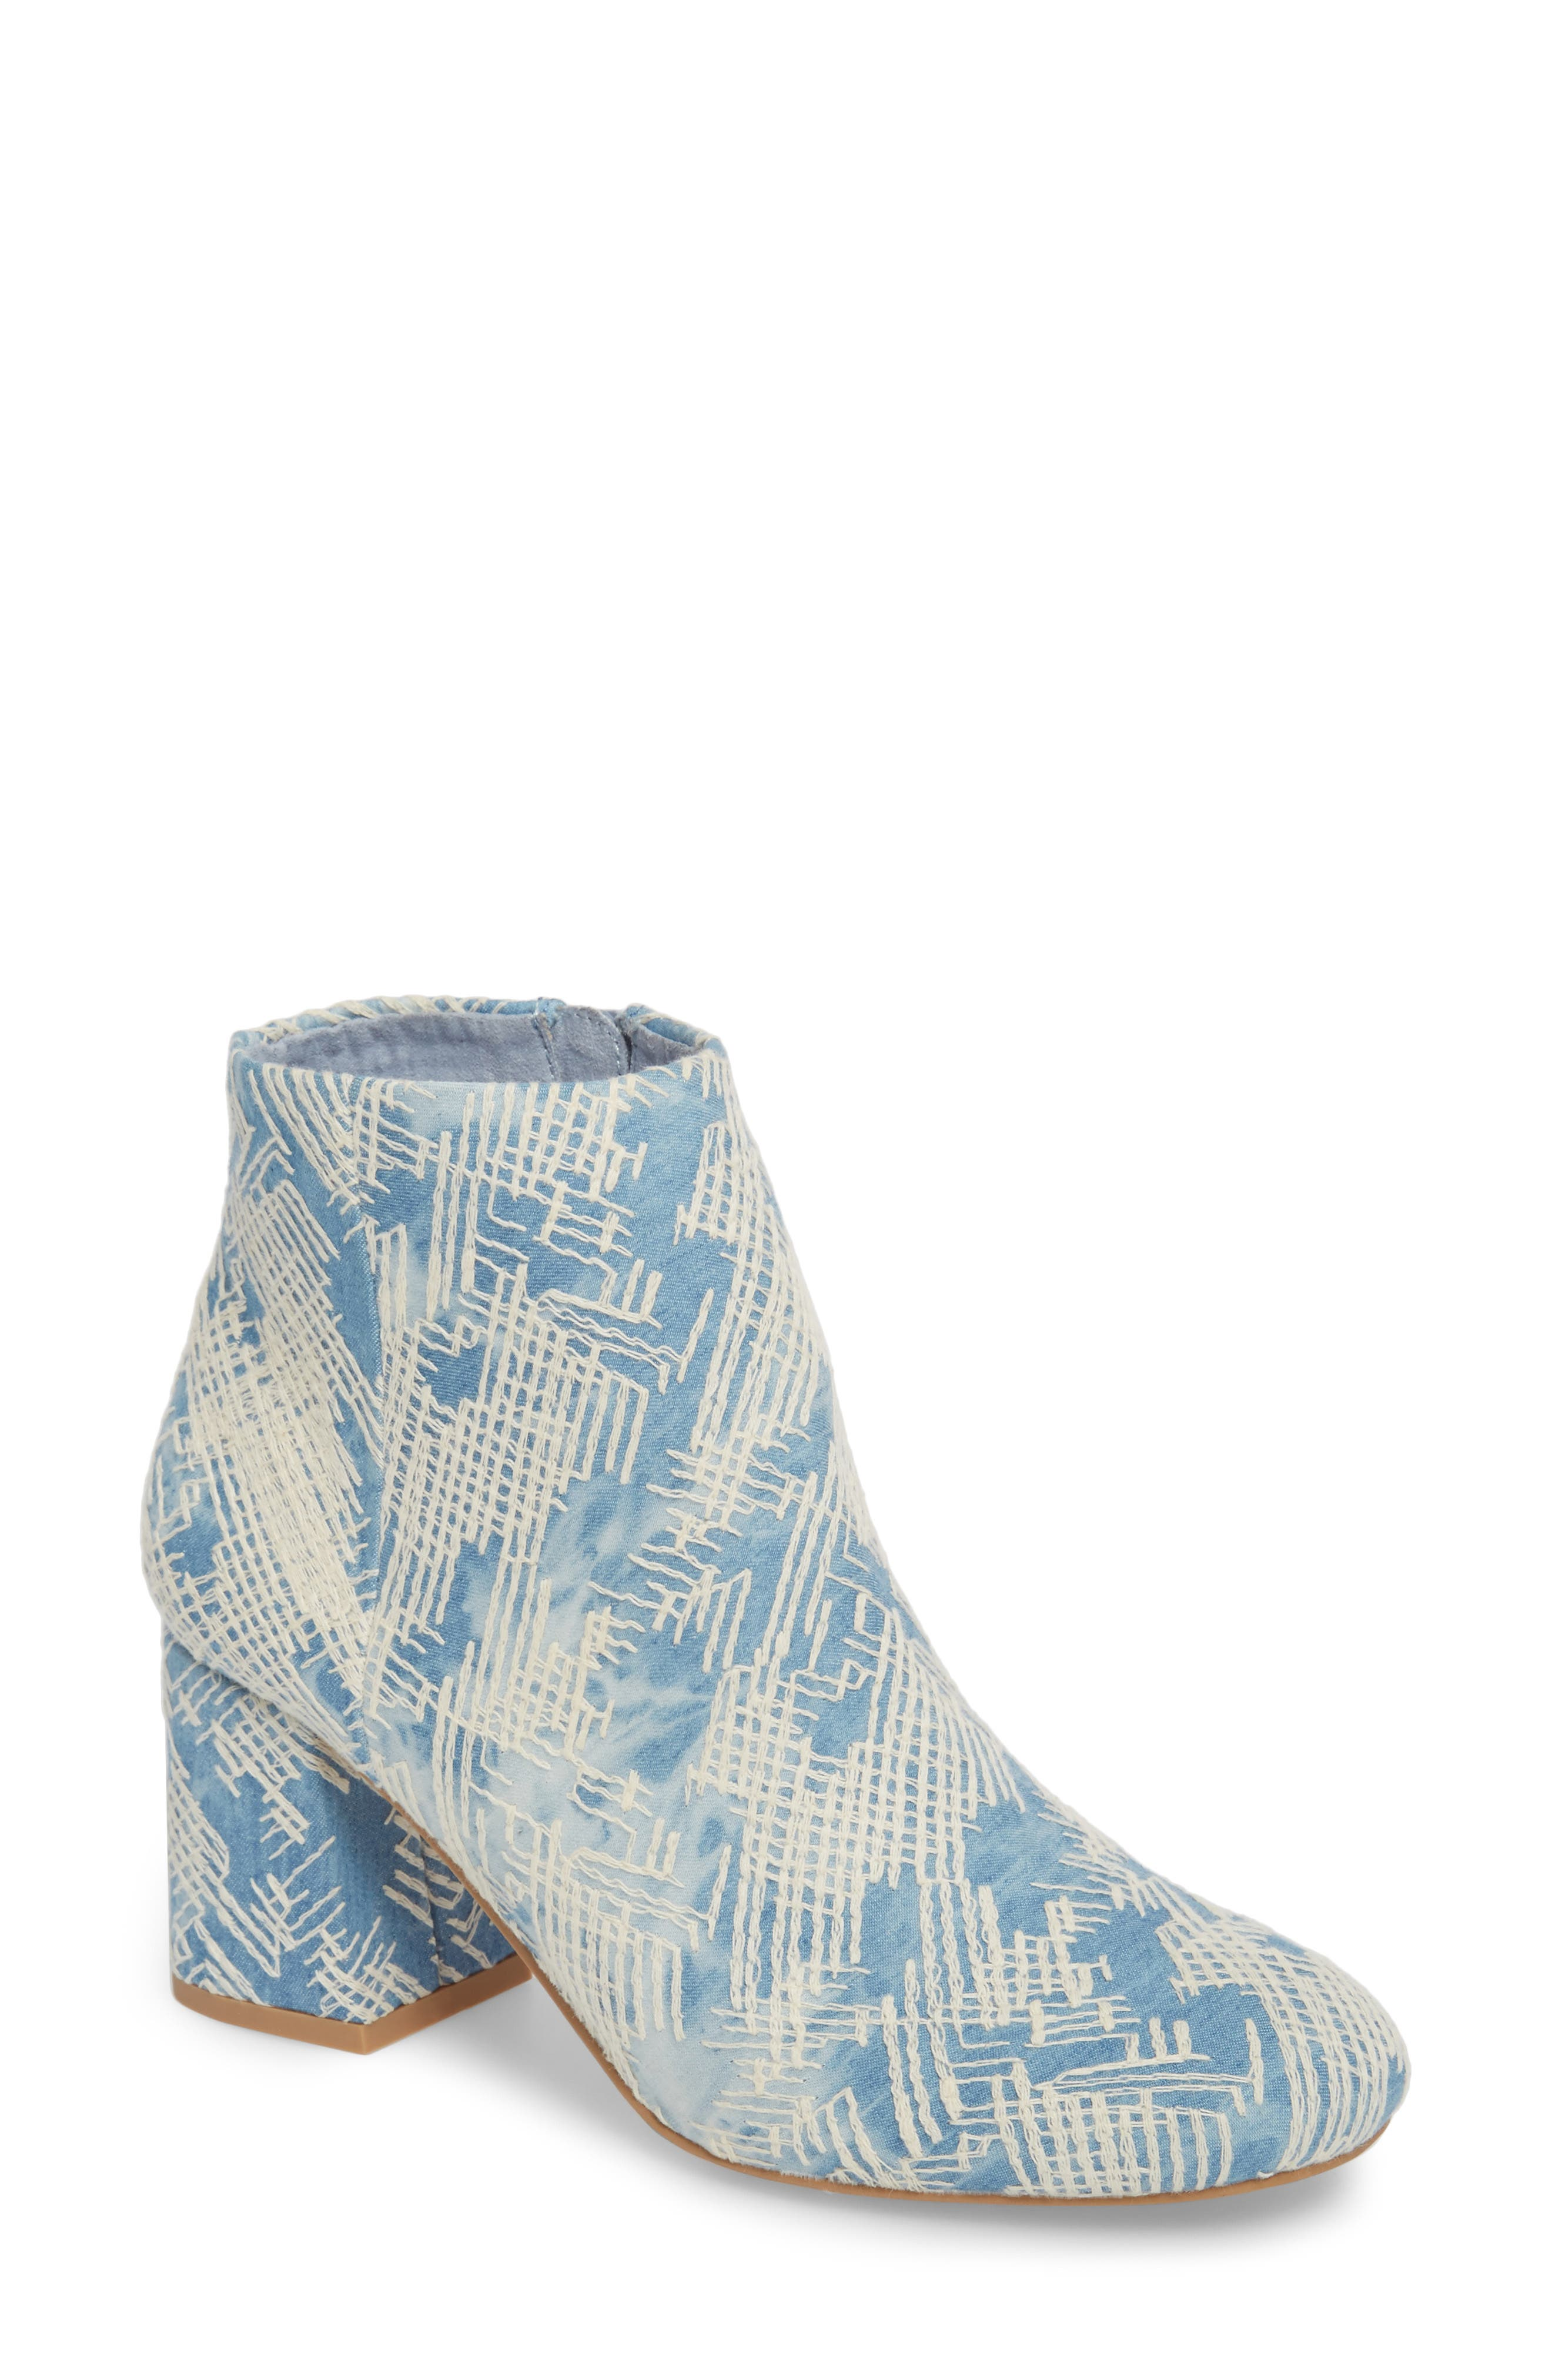 Audition Bootie,                             Main thumbnail 1, color,                             Emrboidered Denim